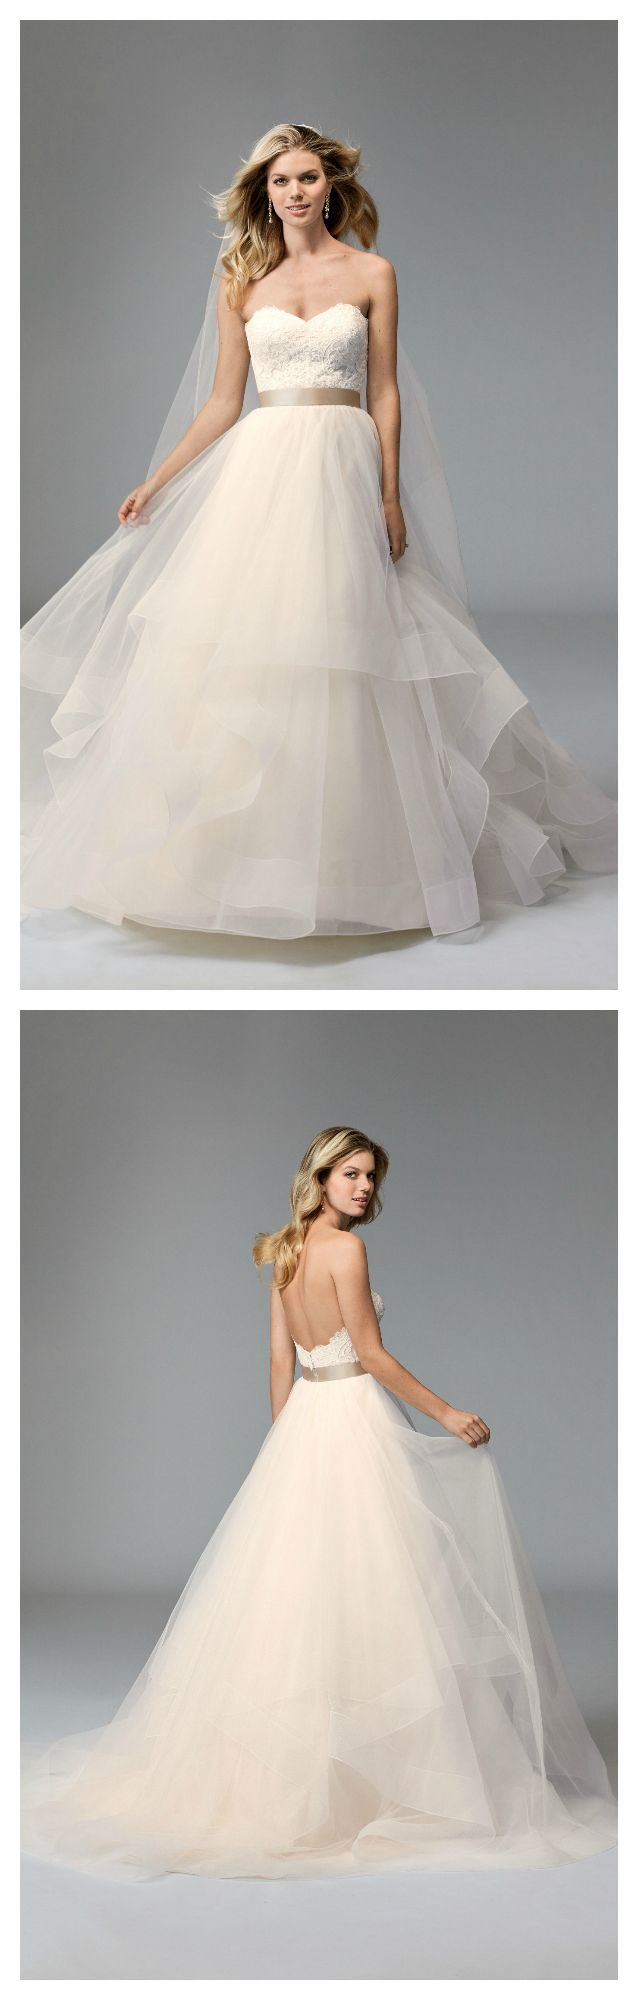 Rowena-horsehair ballgown by Wtoo is a lace corset bodice with a ribbon waist. The tulle ballgown skirt is layered with horsehair trim. Gown is reminiscent of the very popular Wtoo Agatha gown.